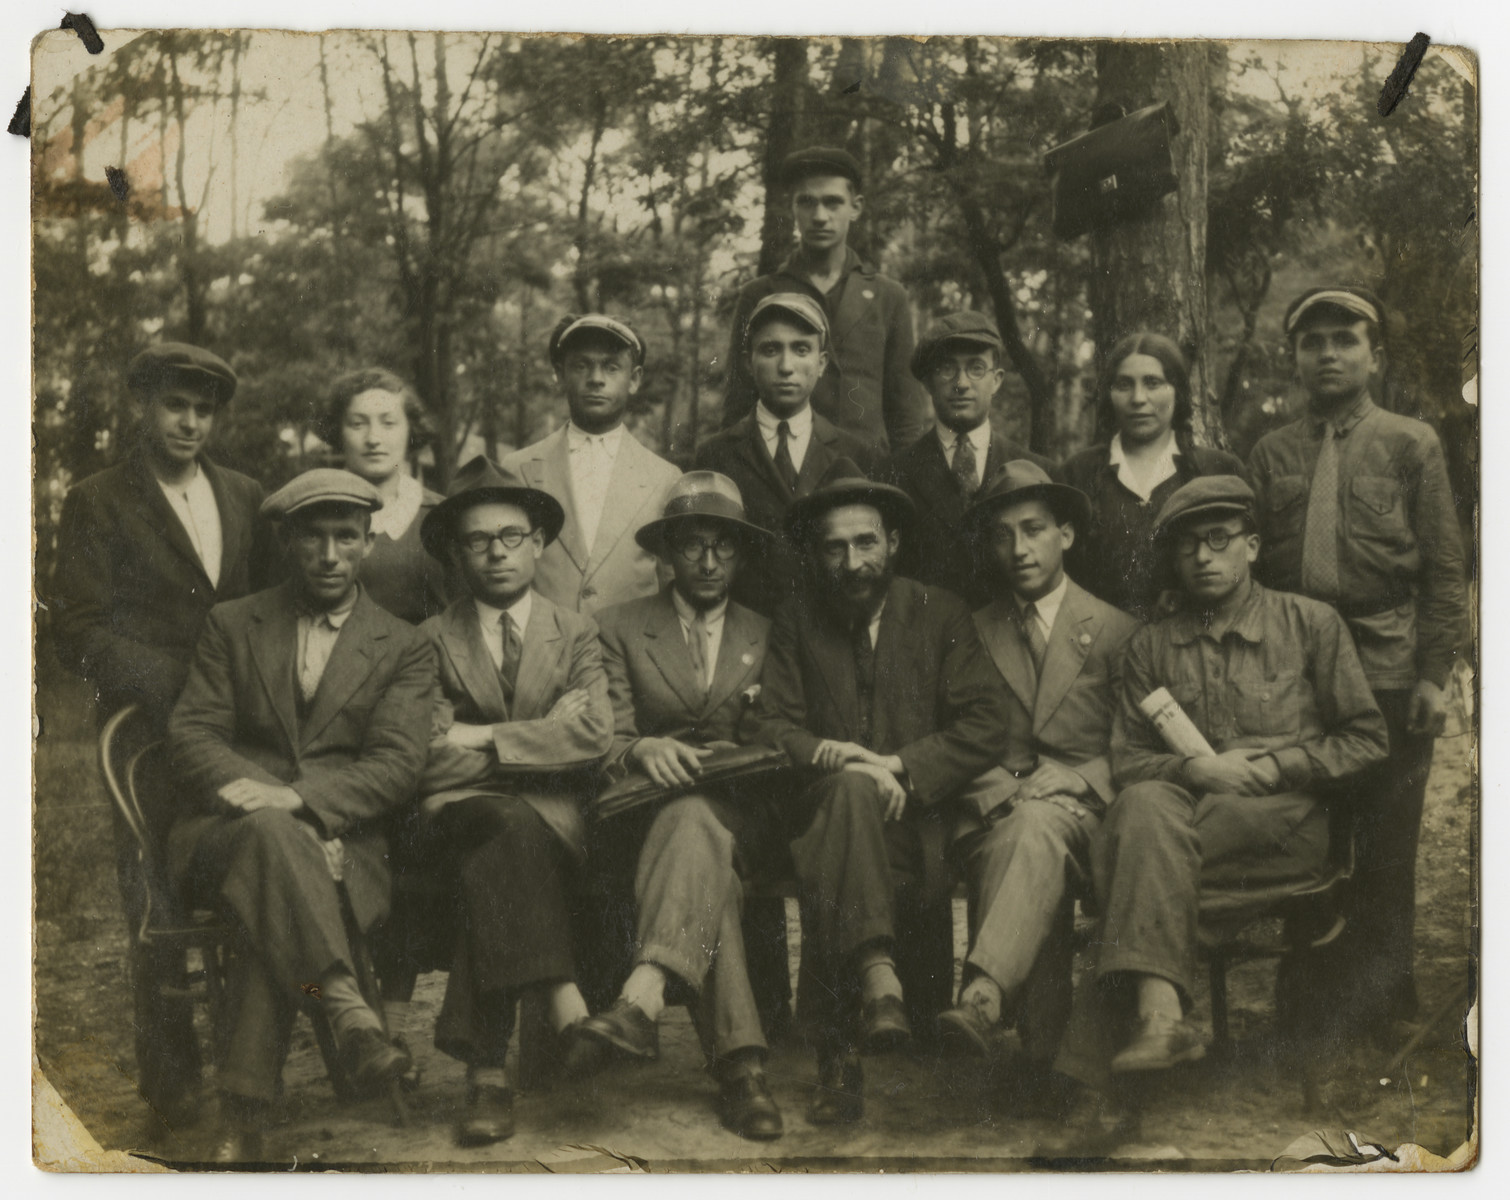 Asher Fetherhar (later Zidon) poses with members of the Hechalutz Mizrachi hachshara in Otwock.